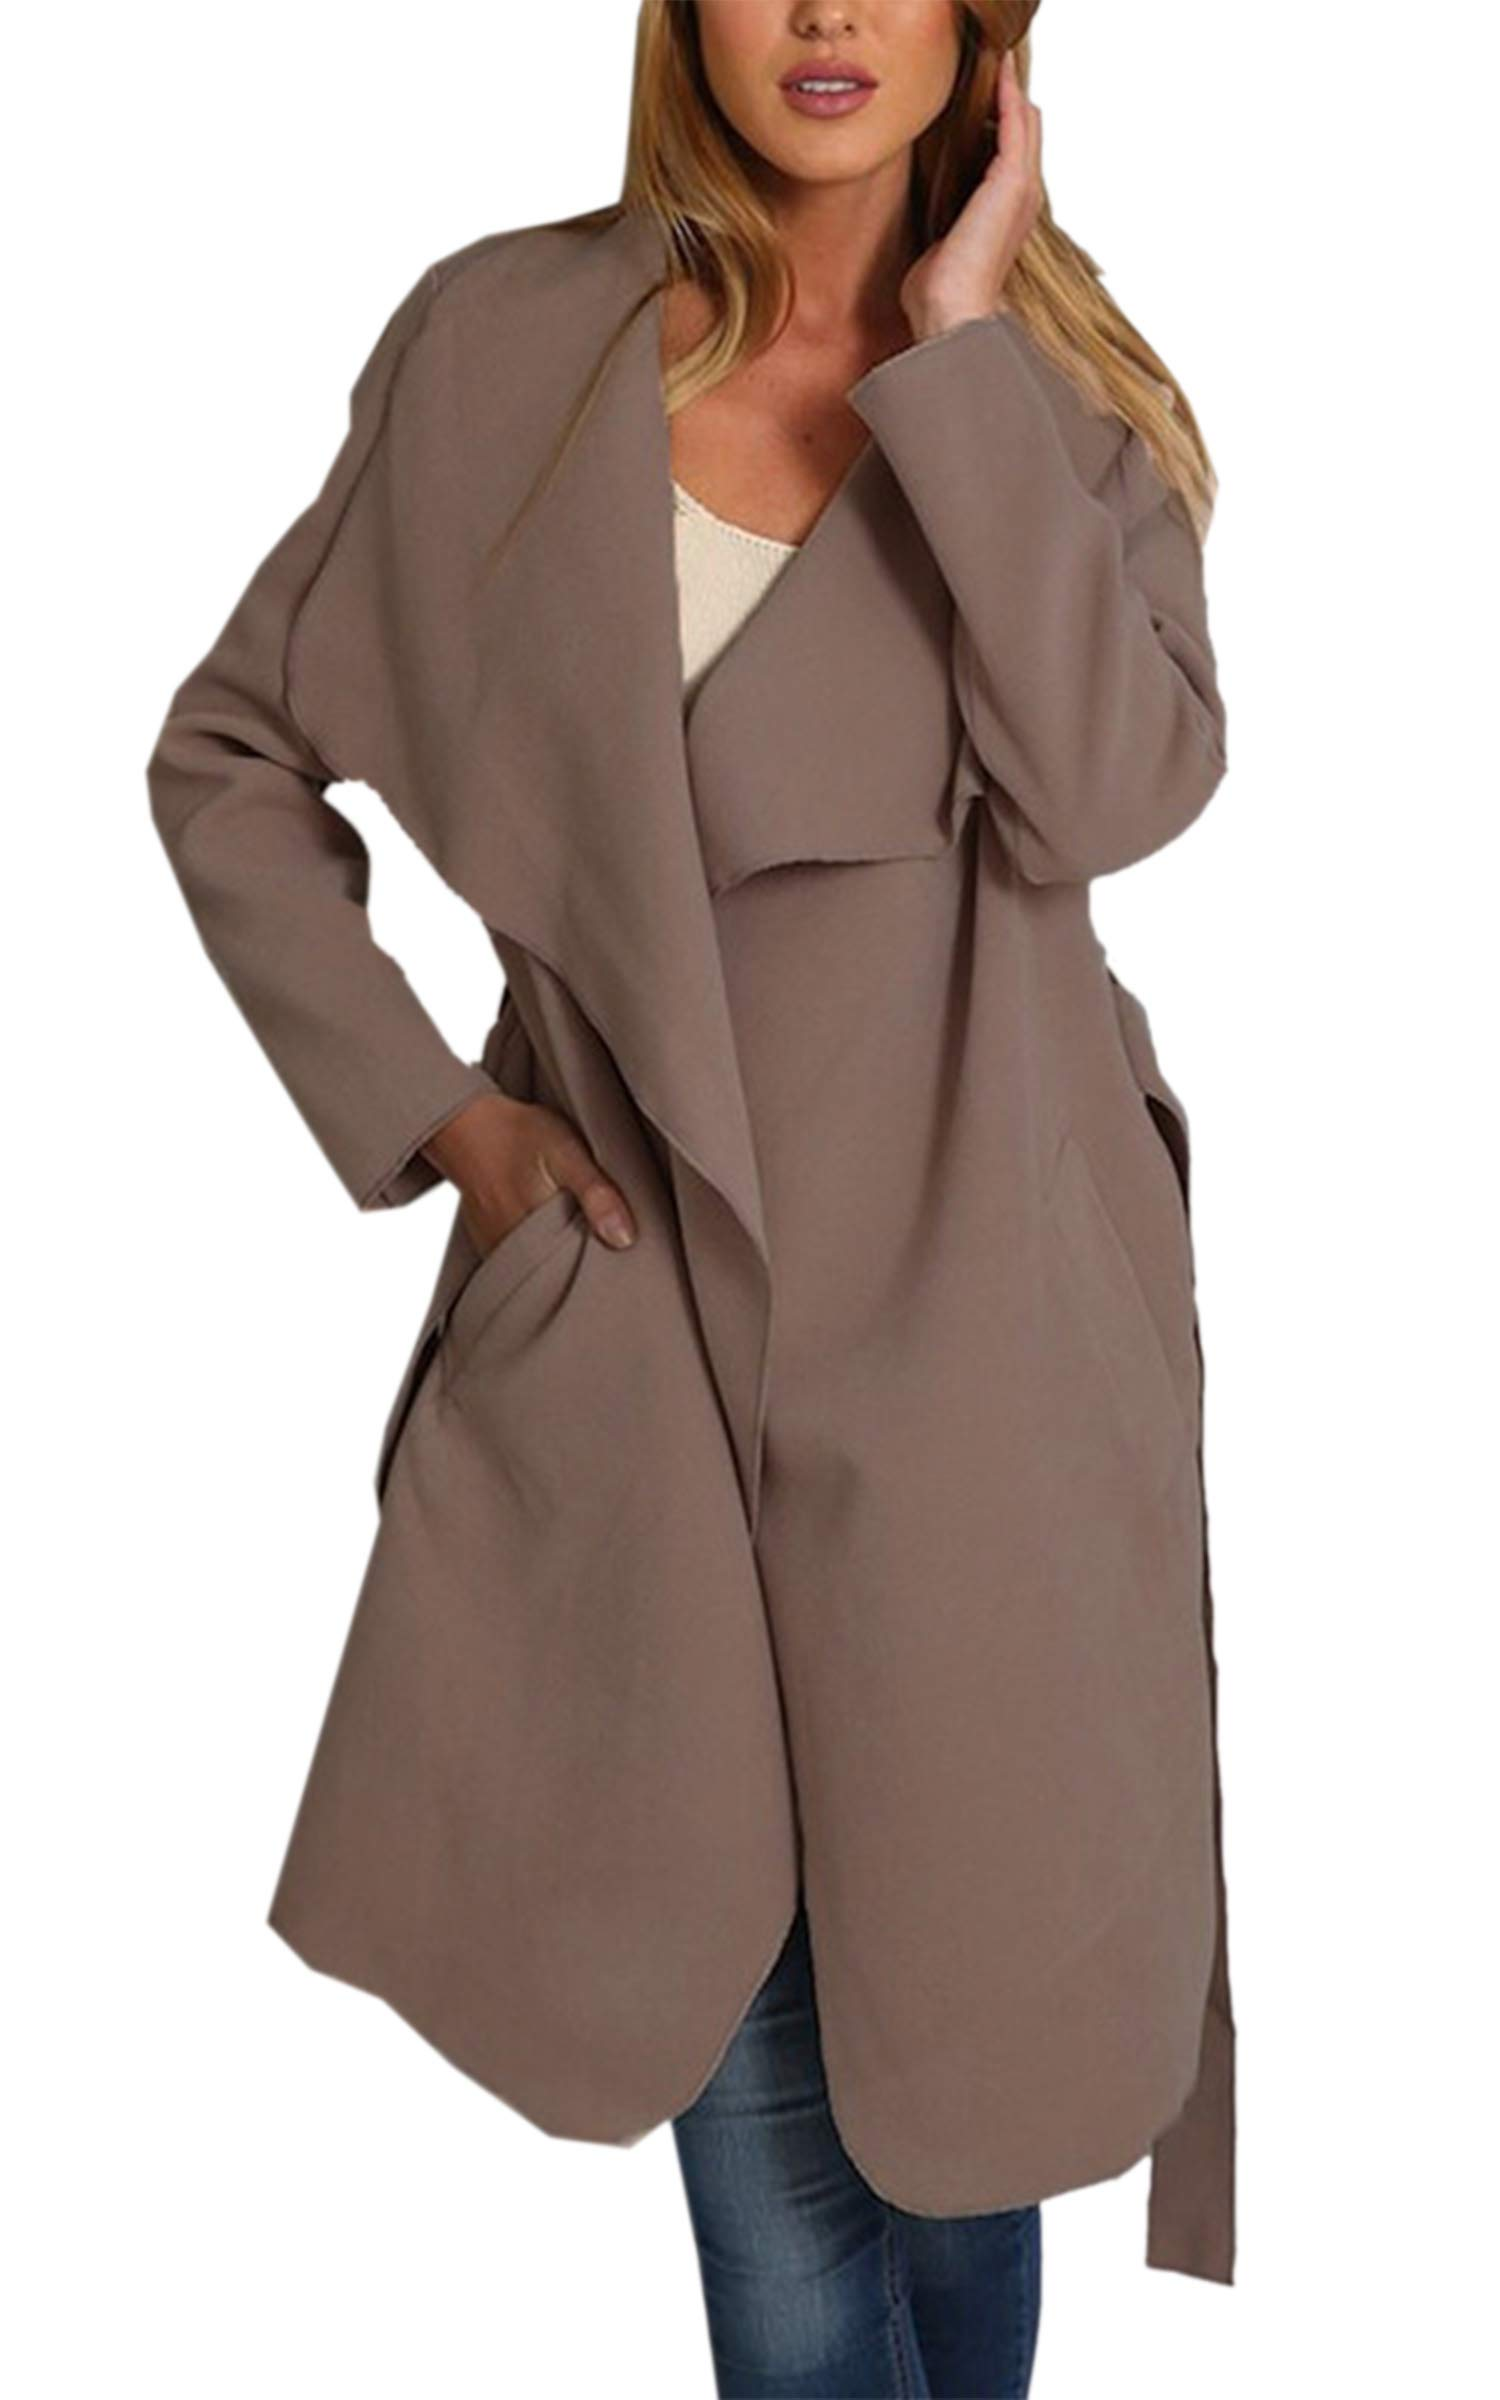 Angashion Women's Casual Long Sleeve Lapel Pocket Outwear Trench Coat Cardigan with Belt Khaki S